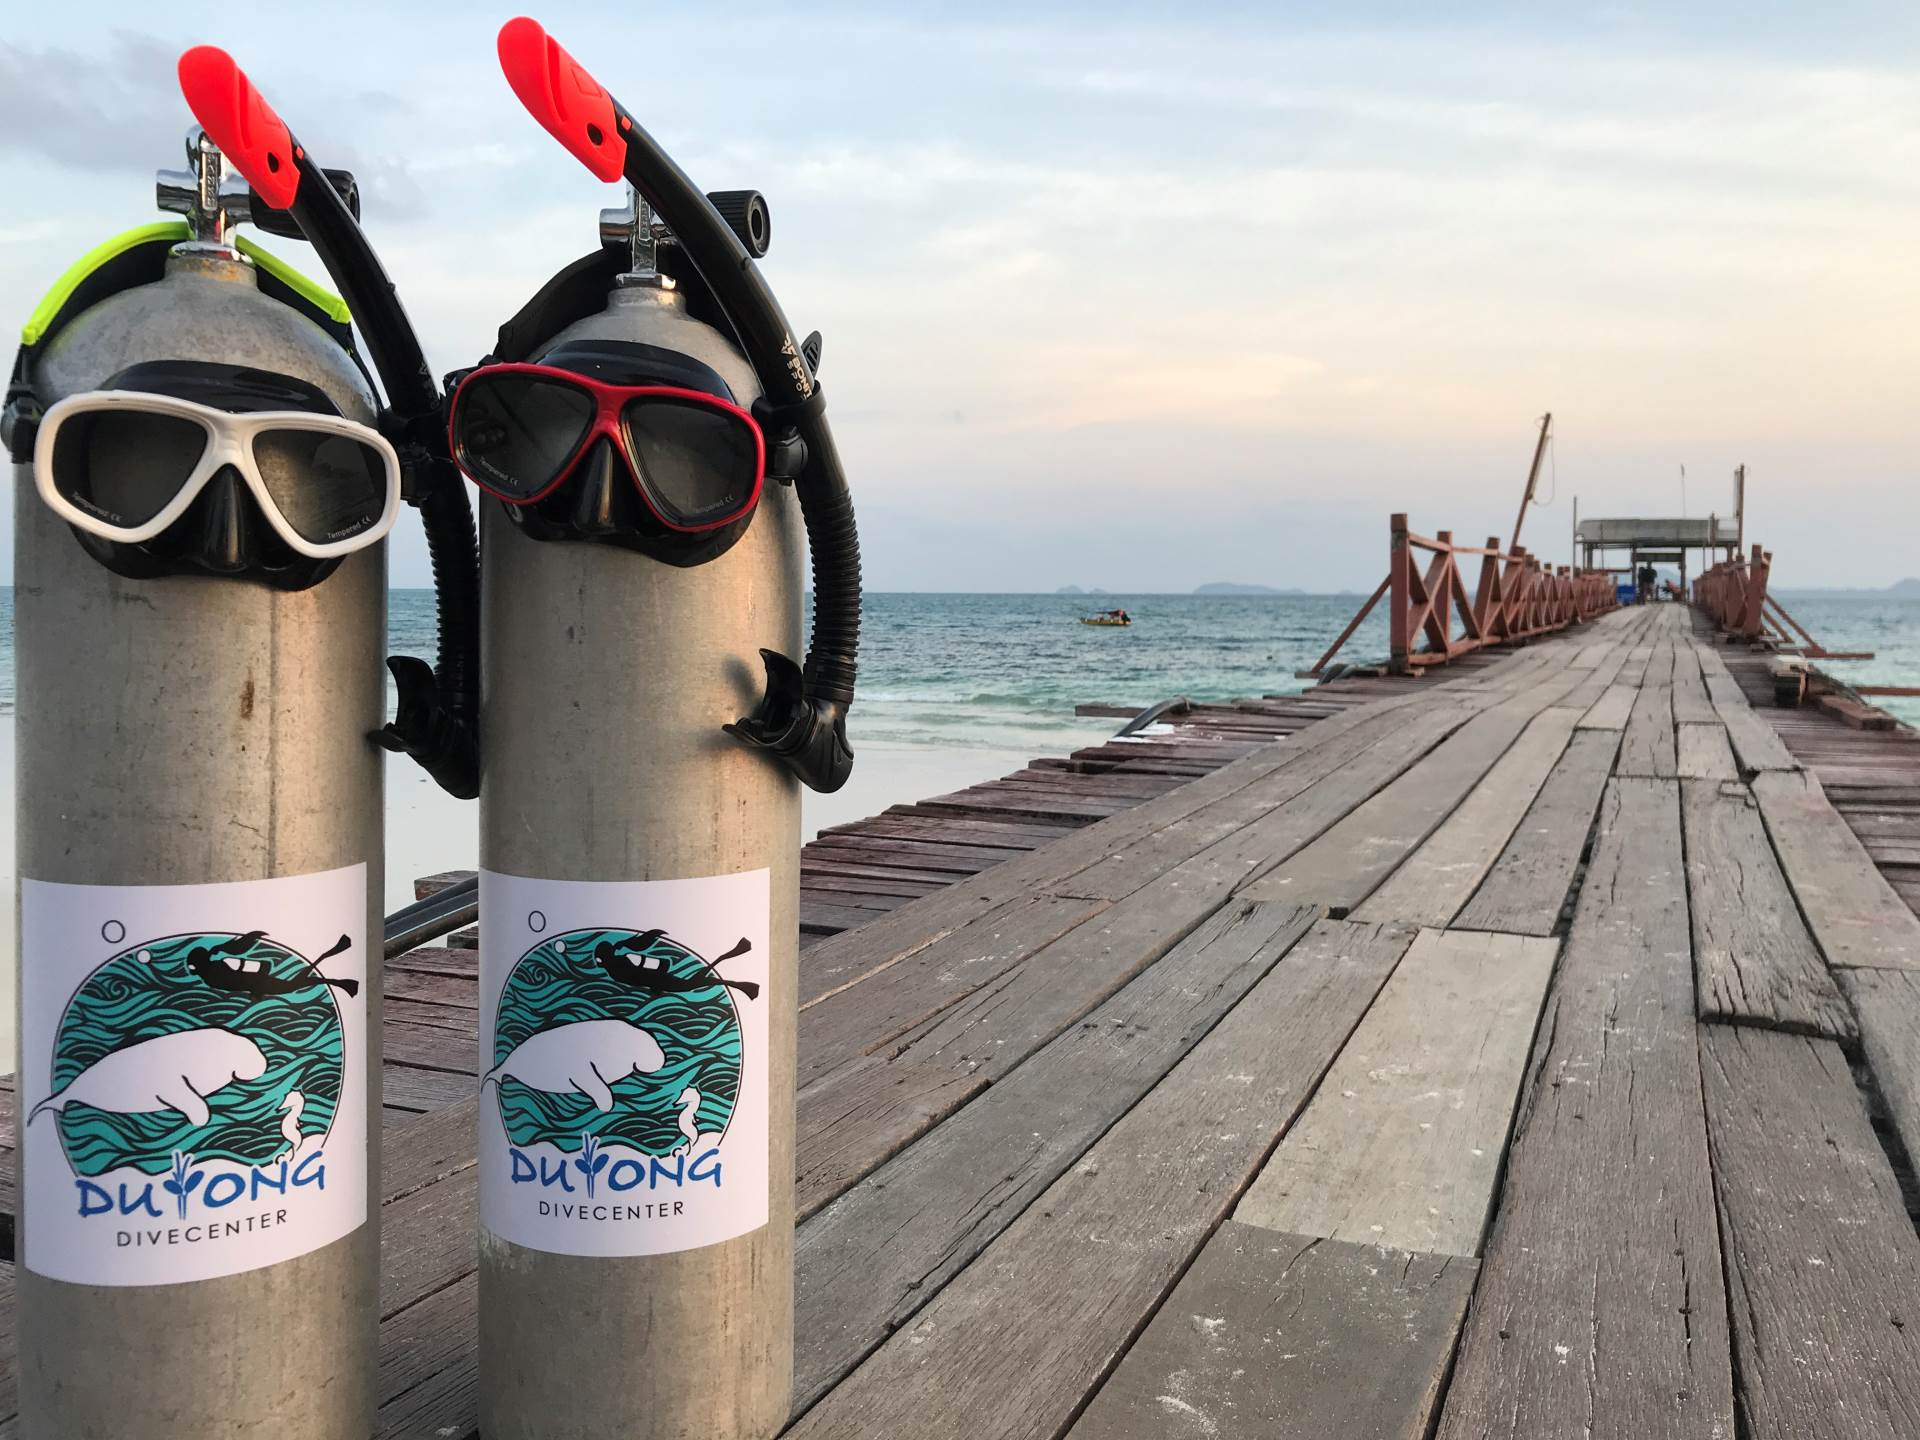 A brand new year has begun, so what are you waiting for?! New year, NEW dive sites!! So come on down to Duyong Dive Center to feel the diveferrence with us at Pulau Tinggi. See you soon in March 2019!